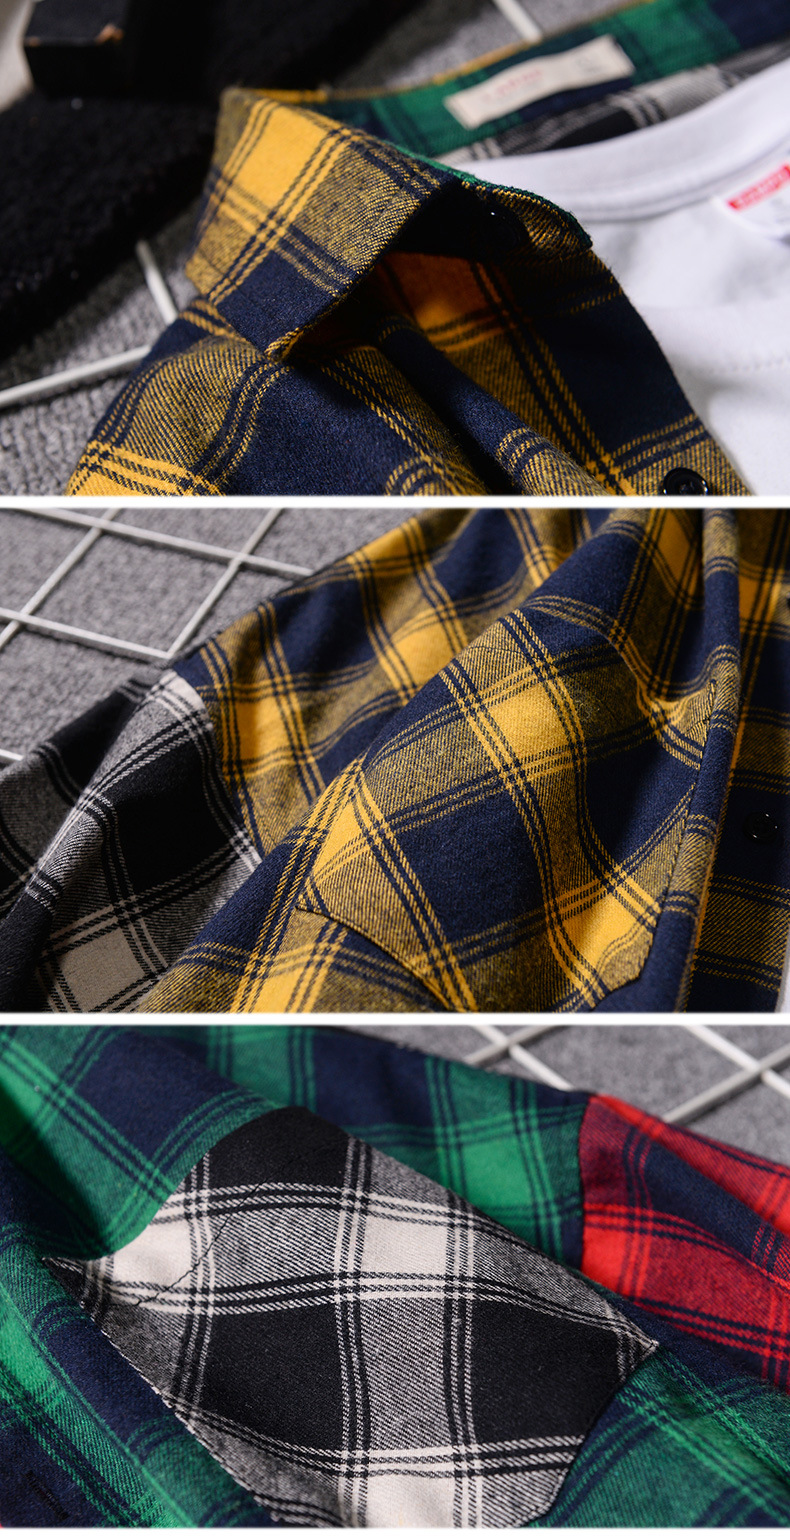 Men 's Loose Plaid Shirt Casual Jacket Student Shirt Plaid Long Sleeve Shirt Spring And Autumn Loose Color Matching Male Shirt 5